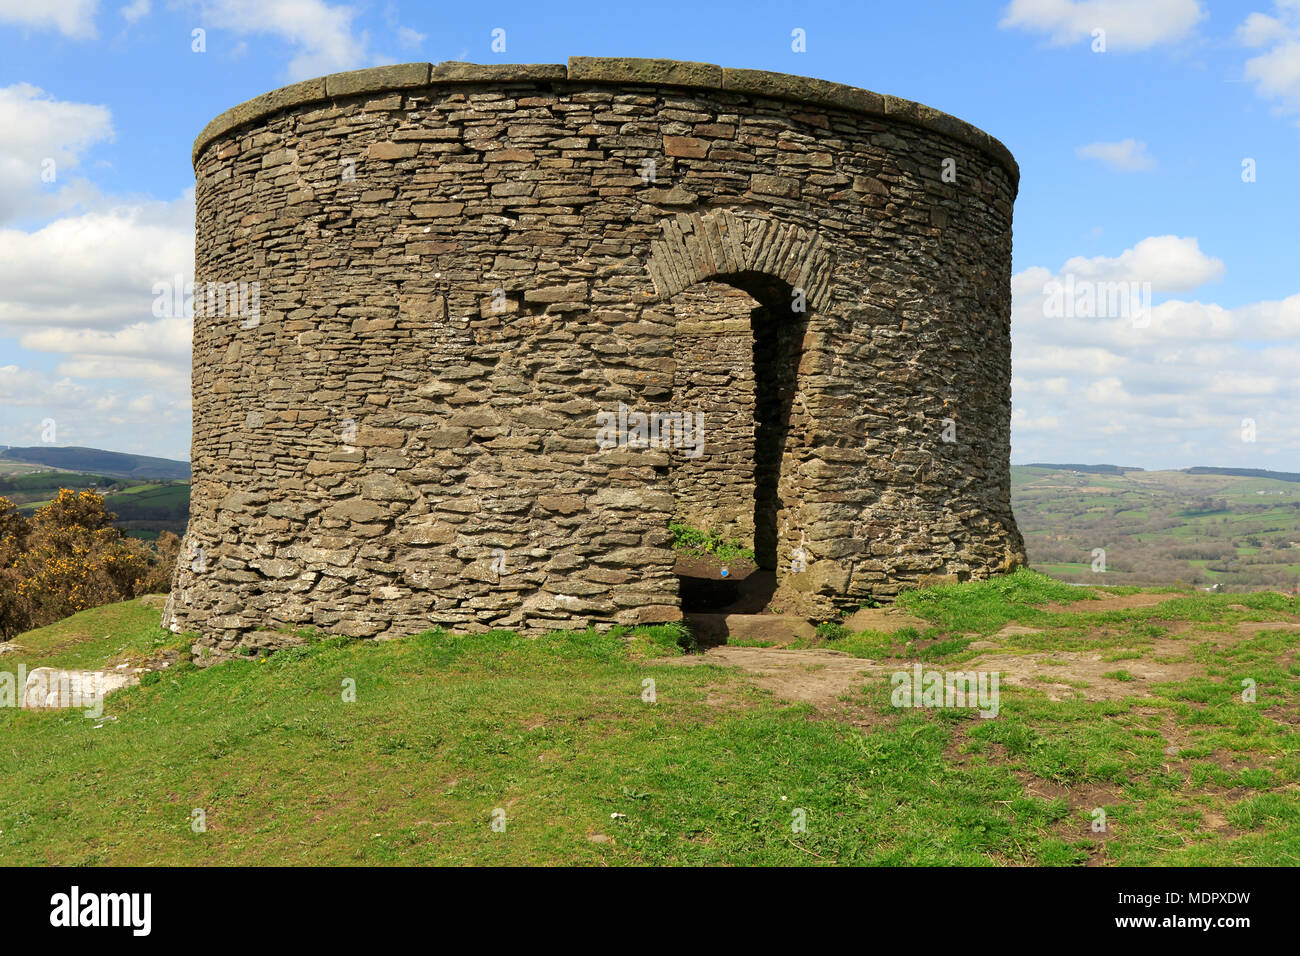 Billy Wynt on the Graig, Llantrisant, South Wales, UK. This stone tower can be found at the highest point in Llantrisant. - Stock Image